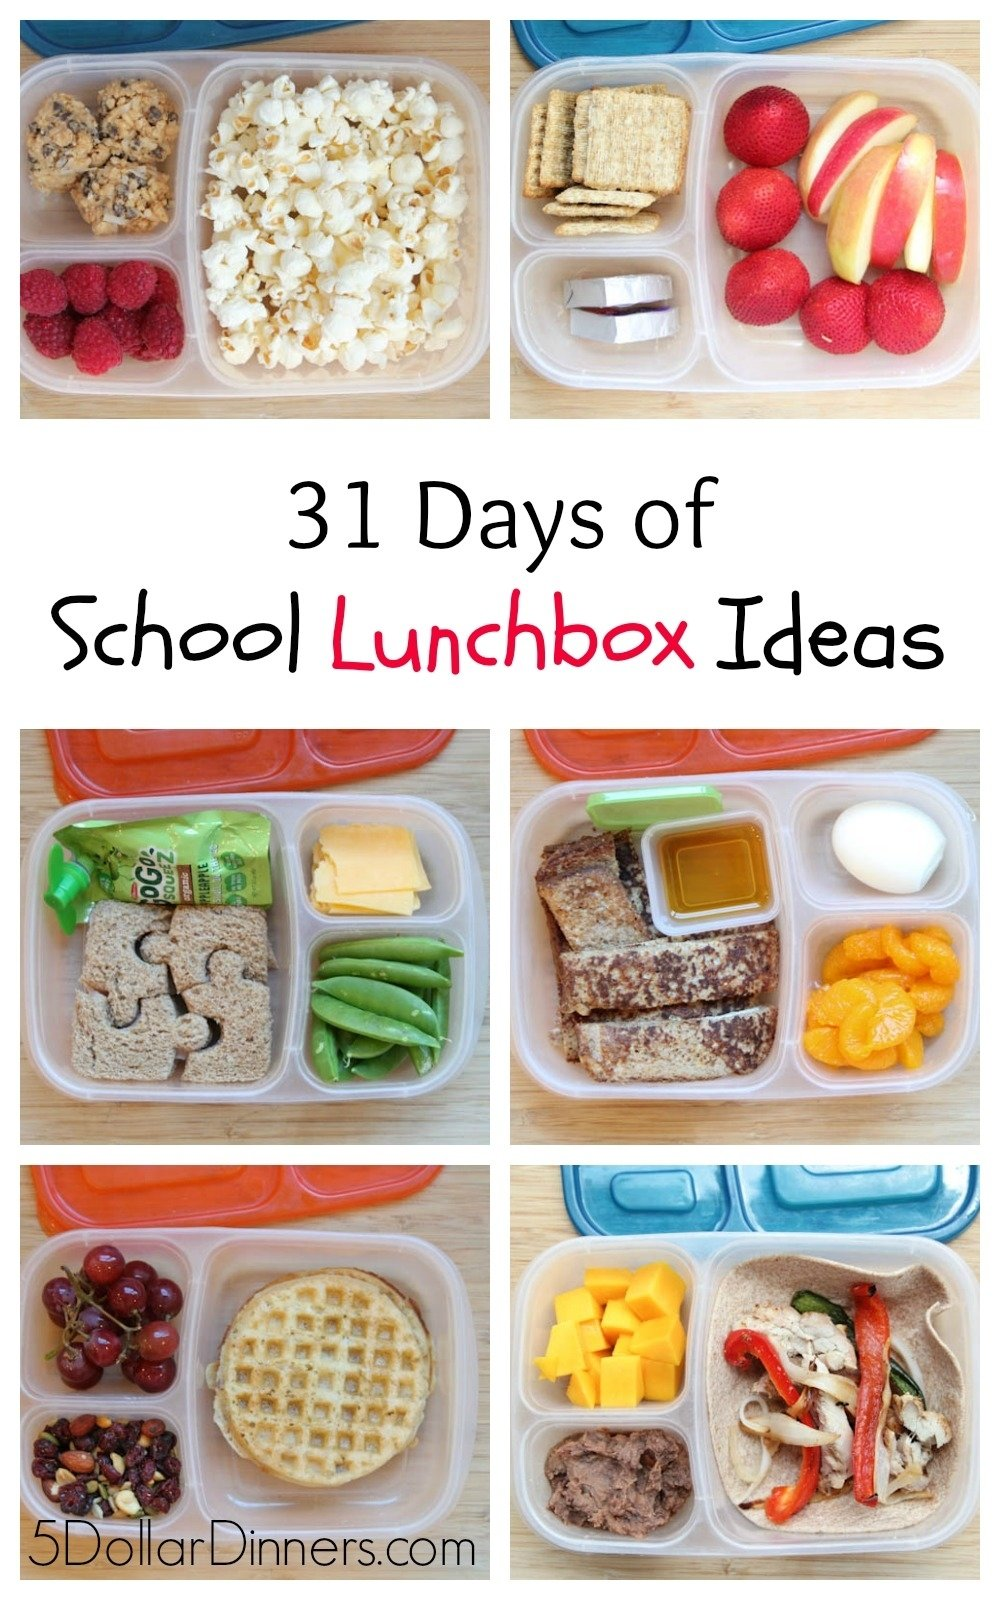 10 Perfect Kids Lunch Ideas For School 31 days of school lunchbox ideas sq 3